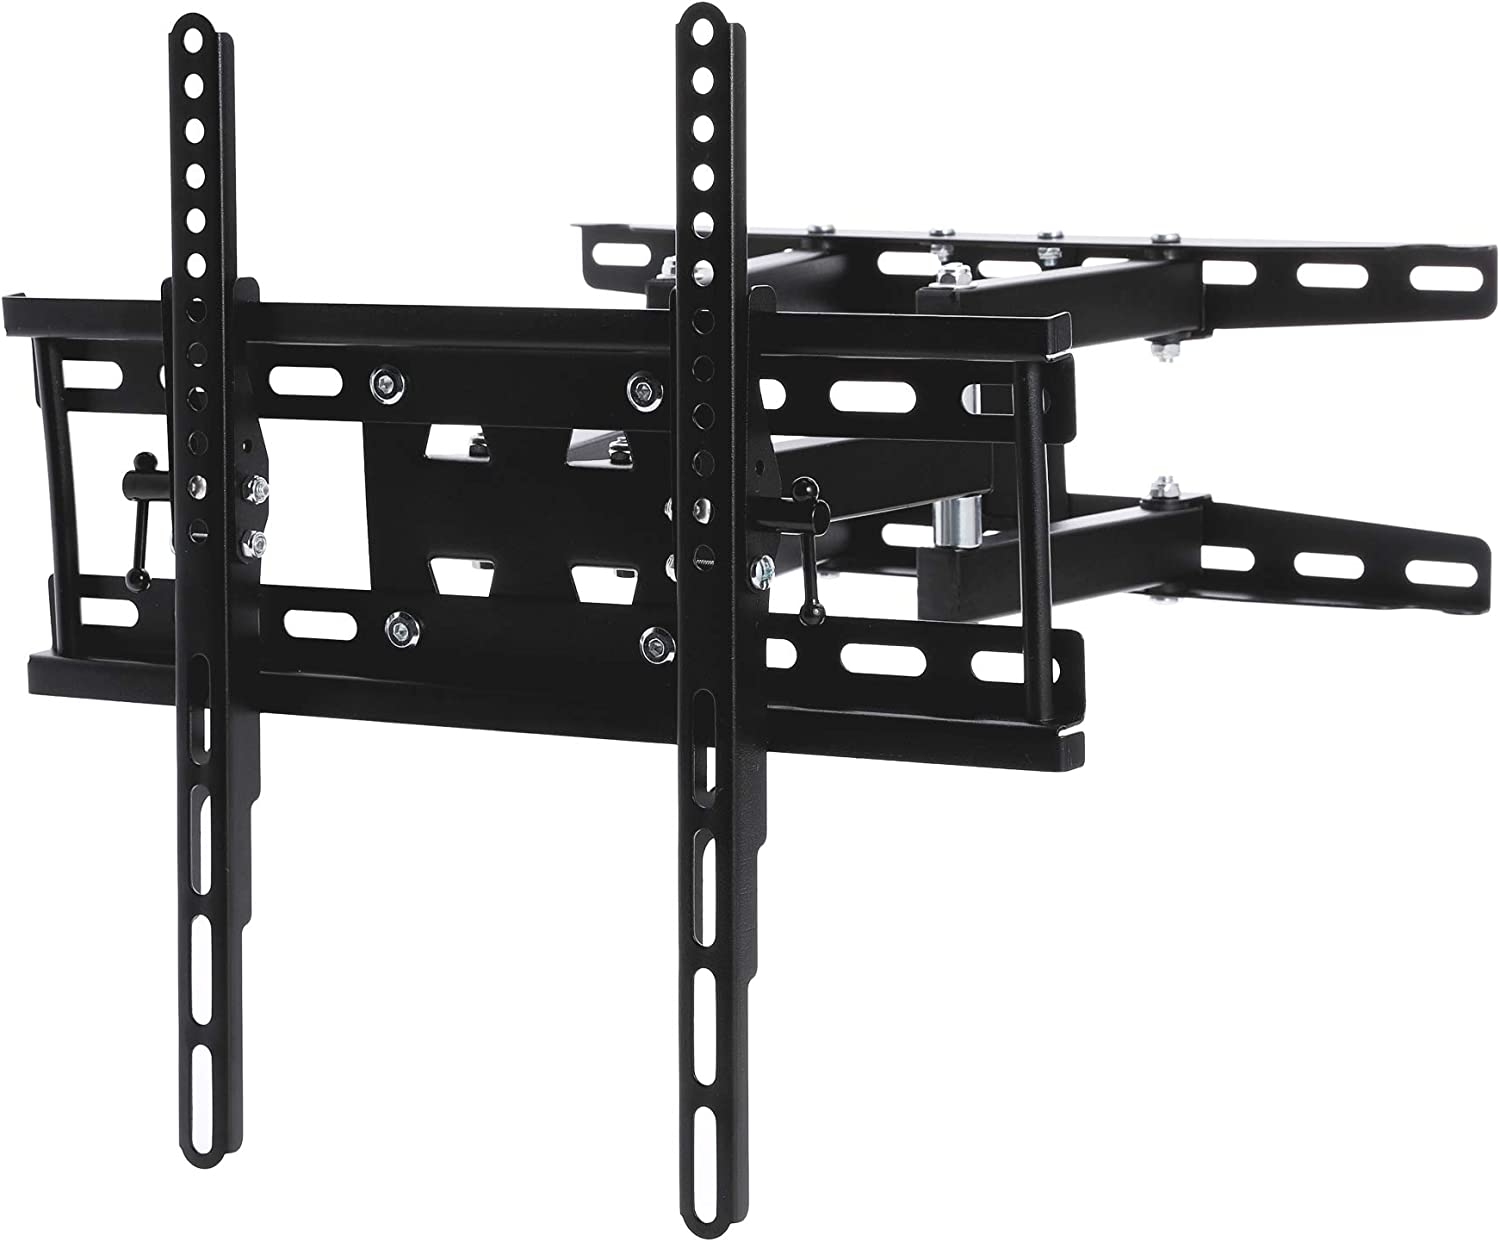 CO-Z TV Wall Mount | TV Bracket with 90-Degree Swivel Articulating Dual Arms | Fits Most 20-60 Inch Flat Screen TV's | Max VESA 400x400mm | Max Weight 110 lbs